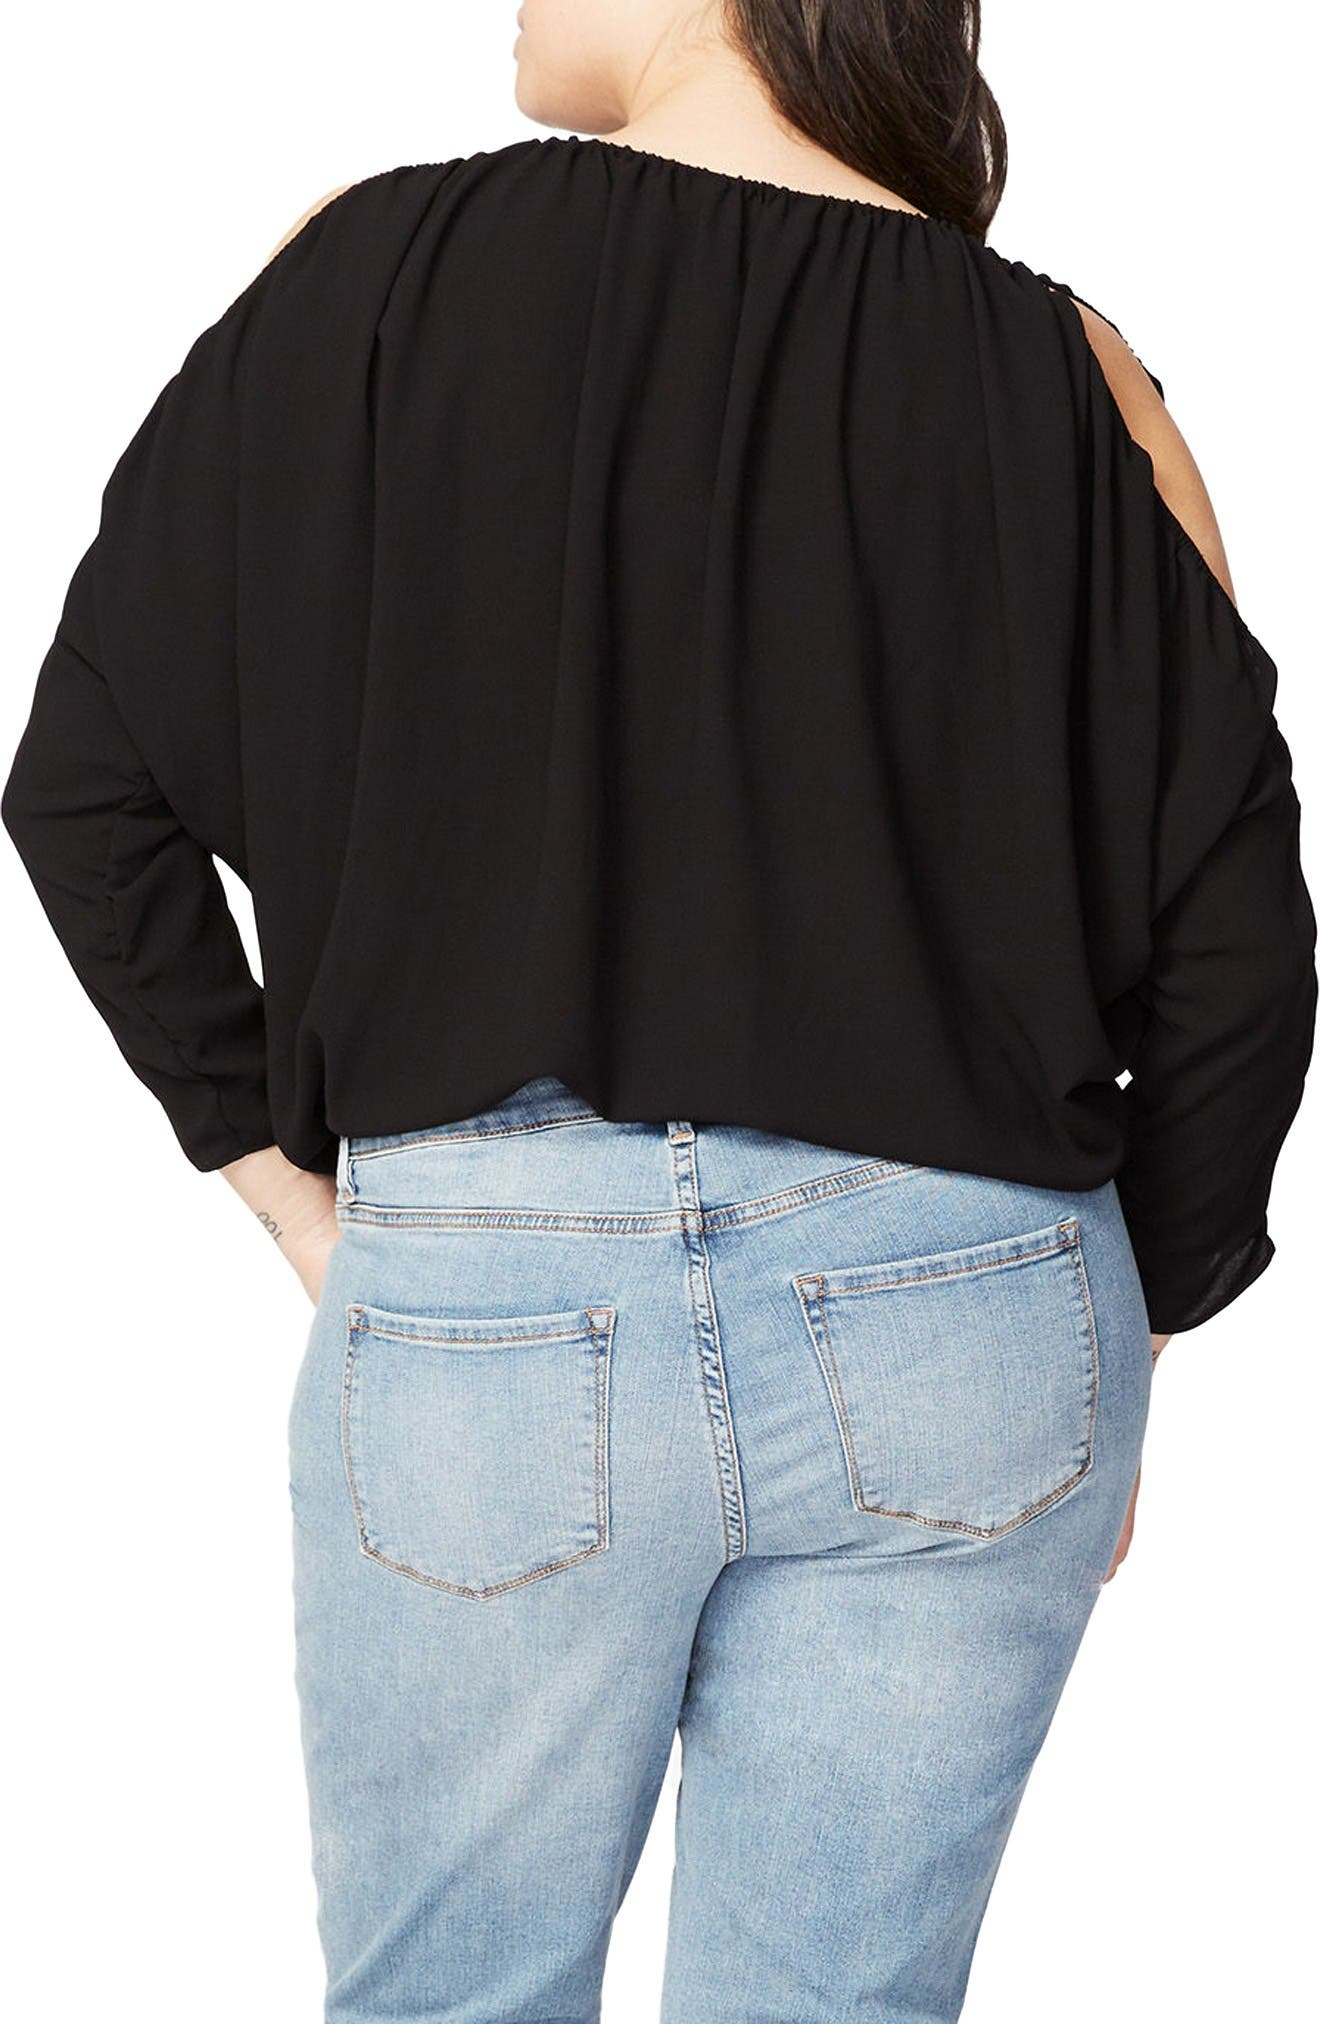 Rachel Roy Ruched Cold Shoulder Blouse,                             Alternate thumbnail 2, color,                             Black